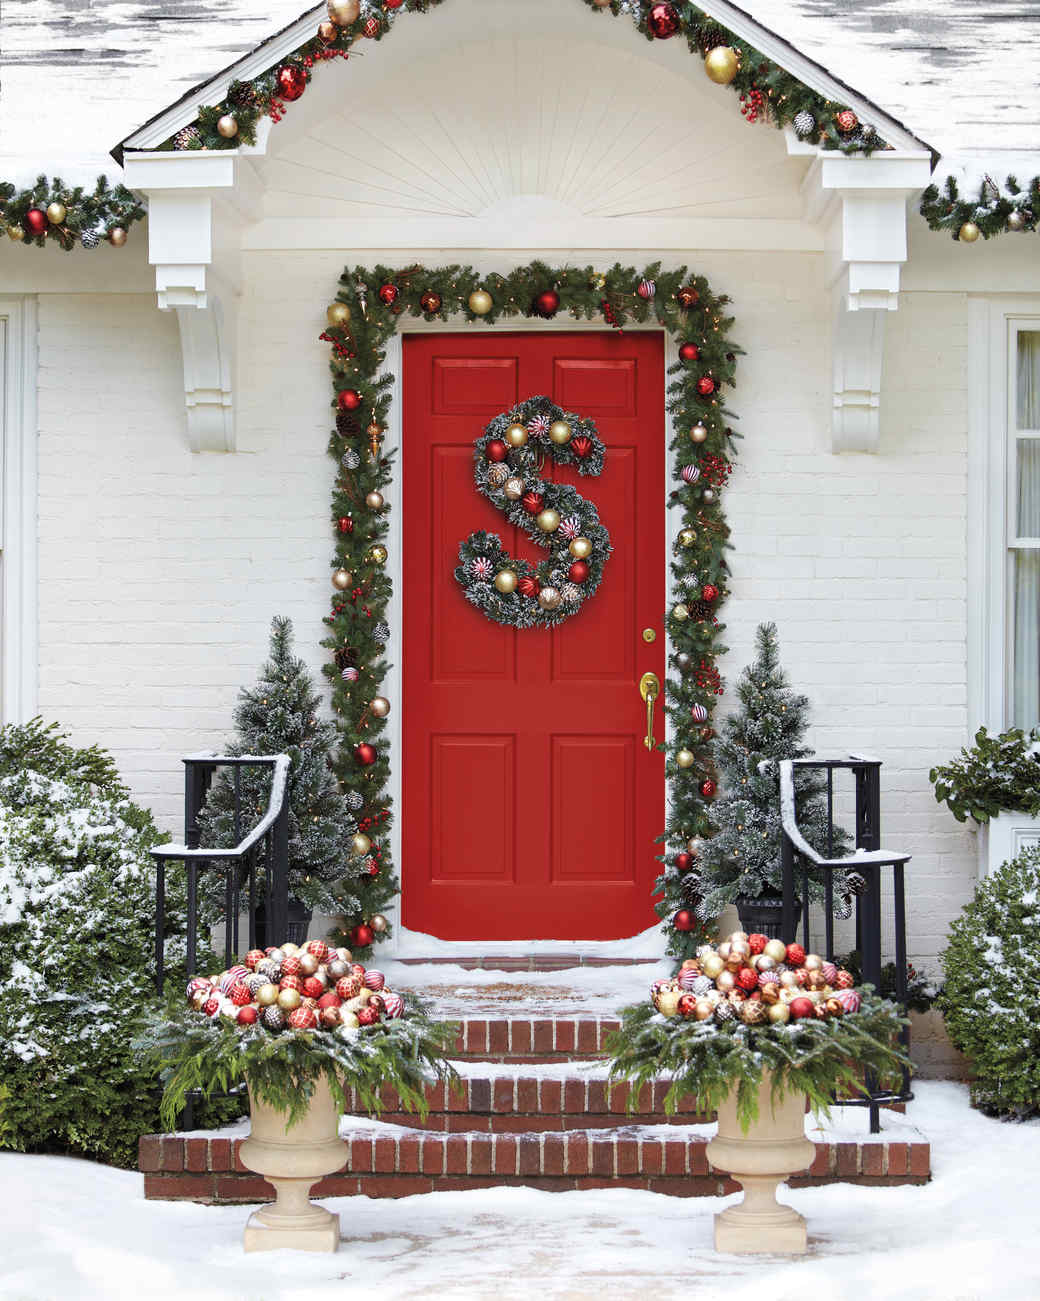 & 31 Days of Holiday Wreaths | Martha Stewart